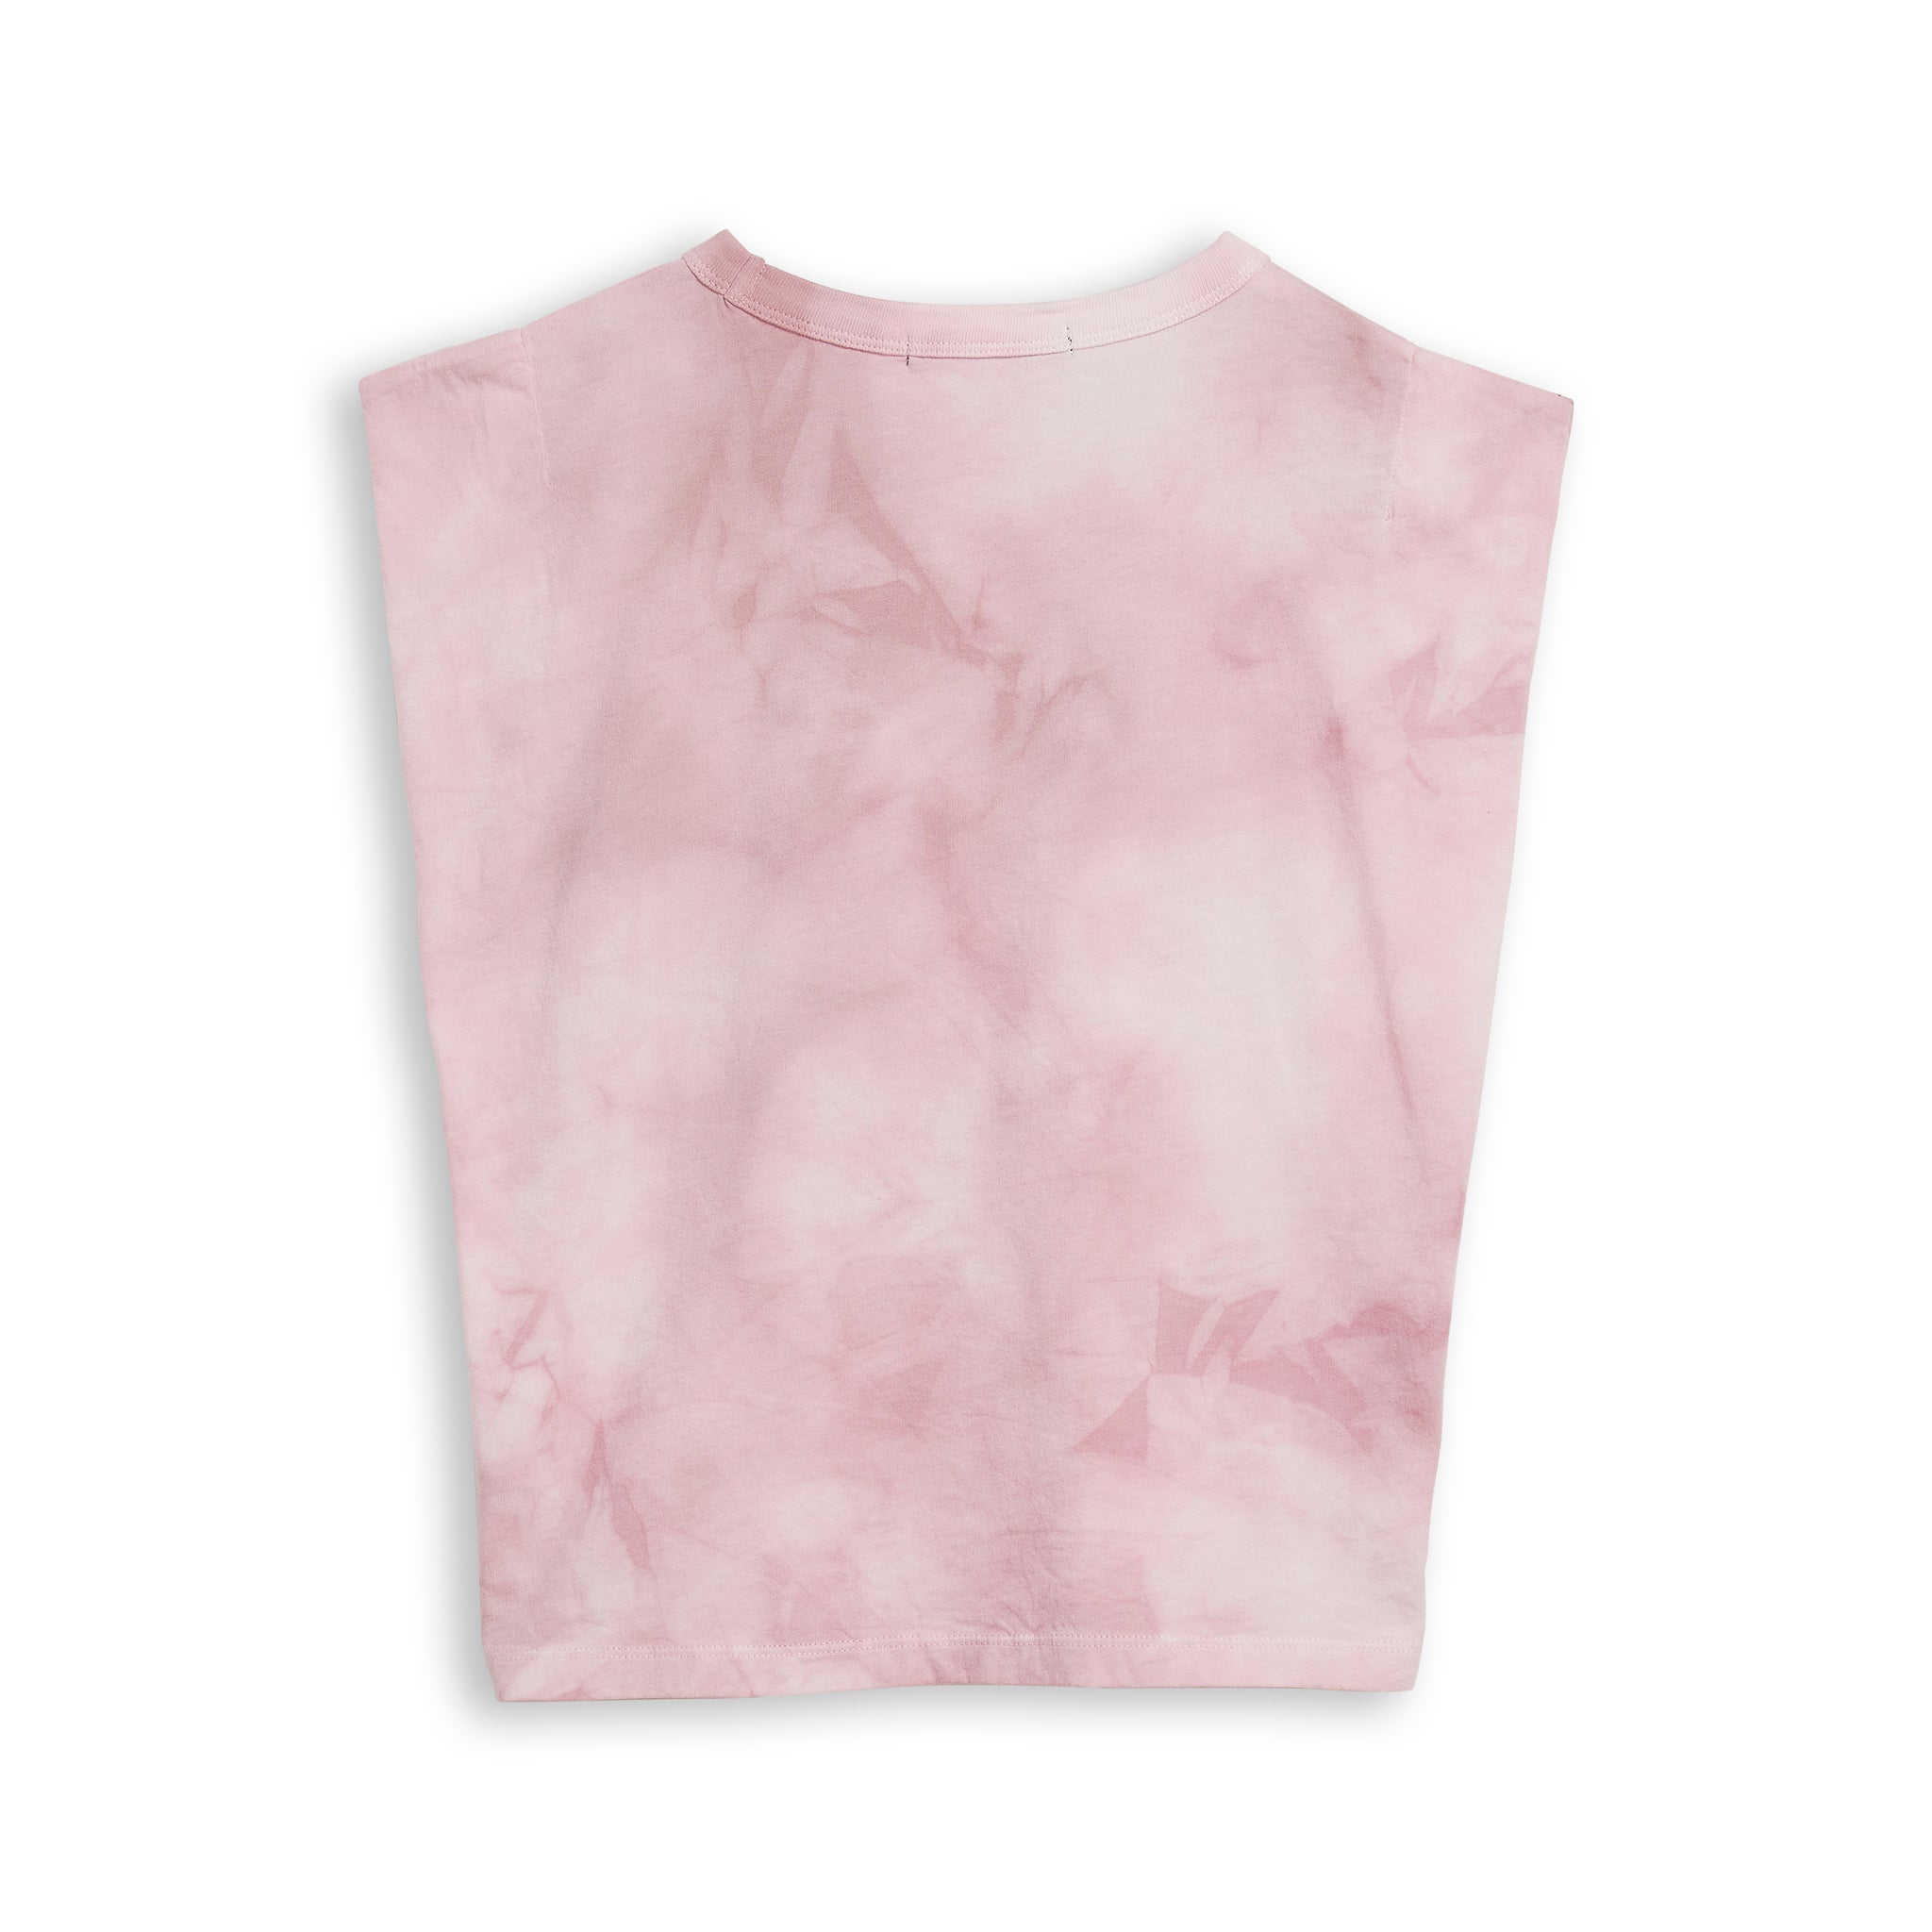 HALEY Pale Pink Tie & Dye - Sleevesless Tee-Shirt 2